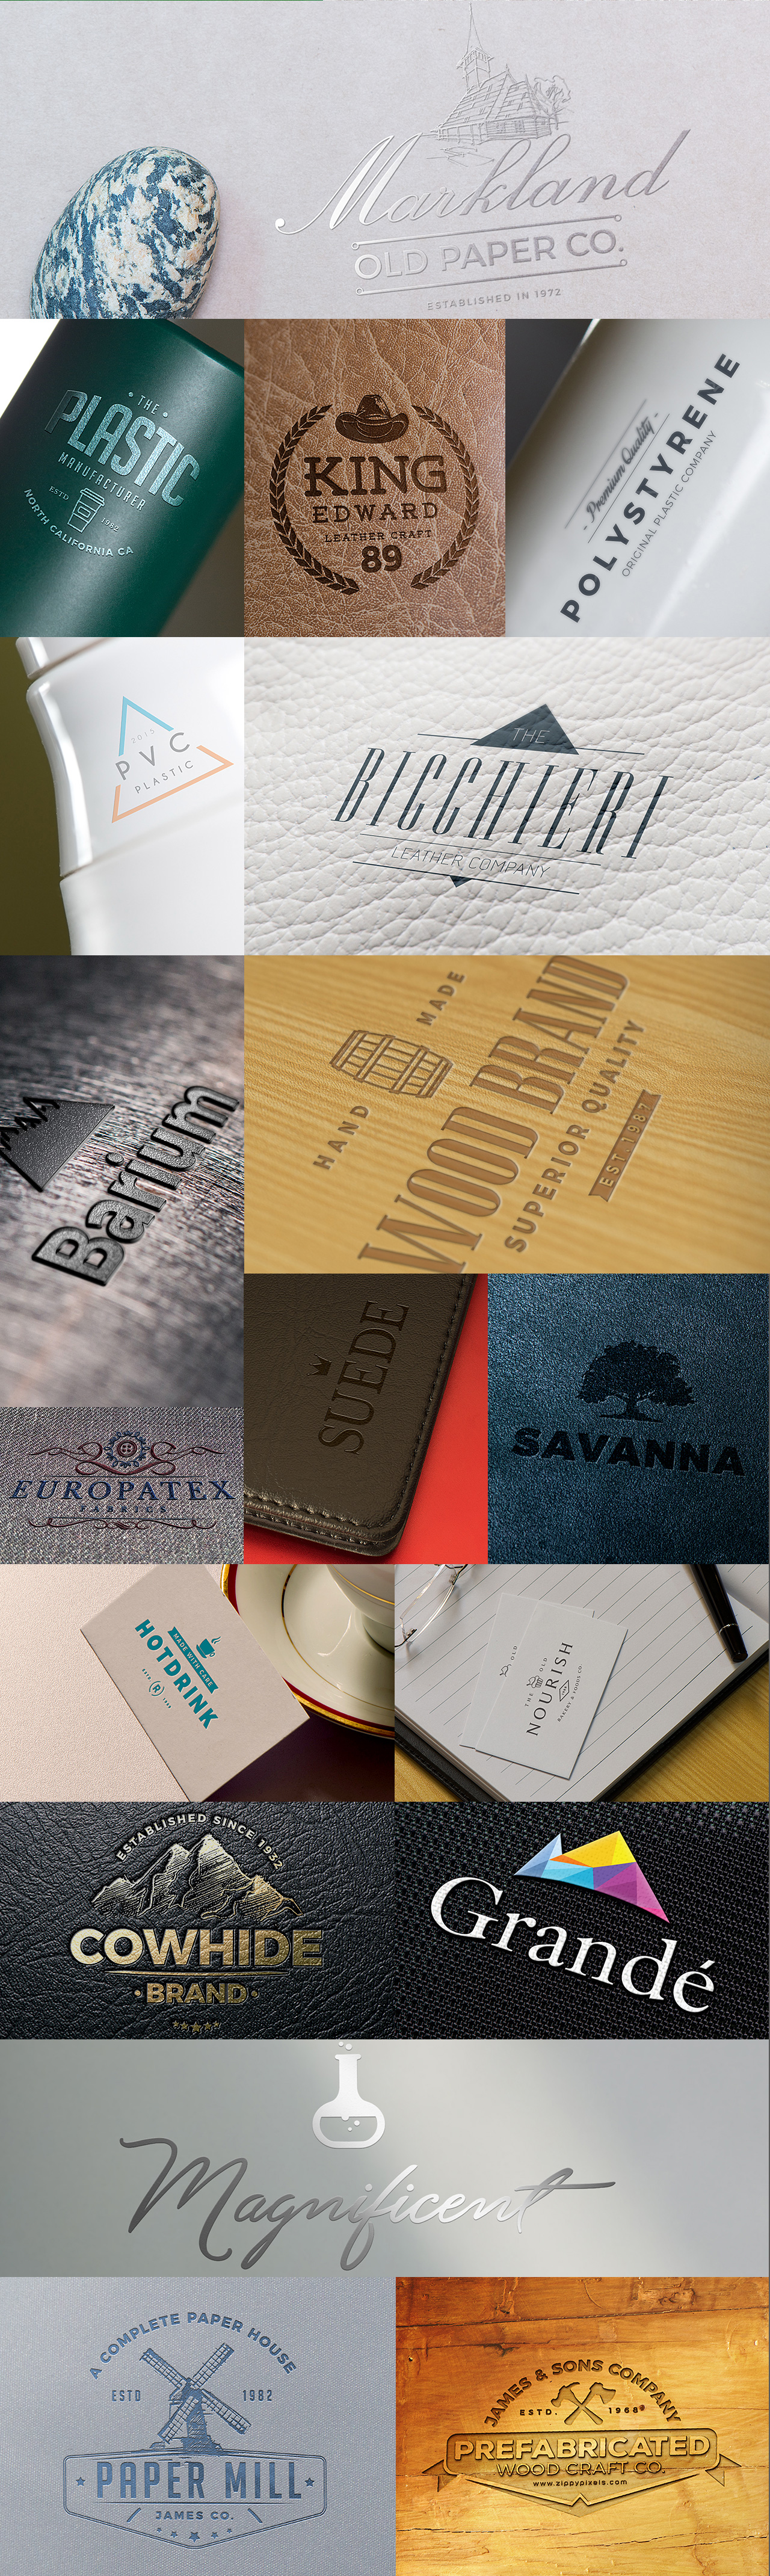 Classic, shining, beautiful Logo Mock-ups on Plastic Bottles, papers, Wood and other Surfaces